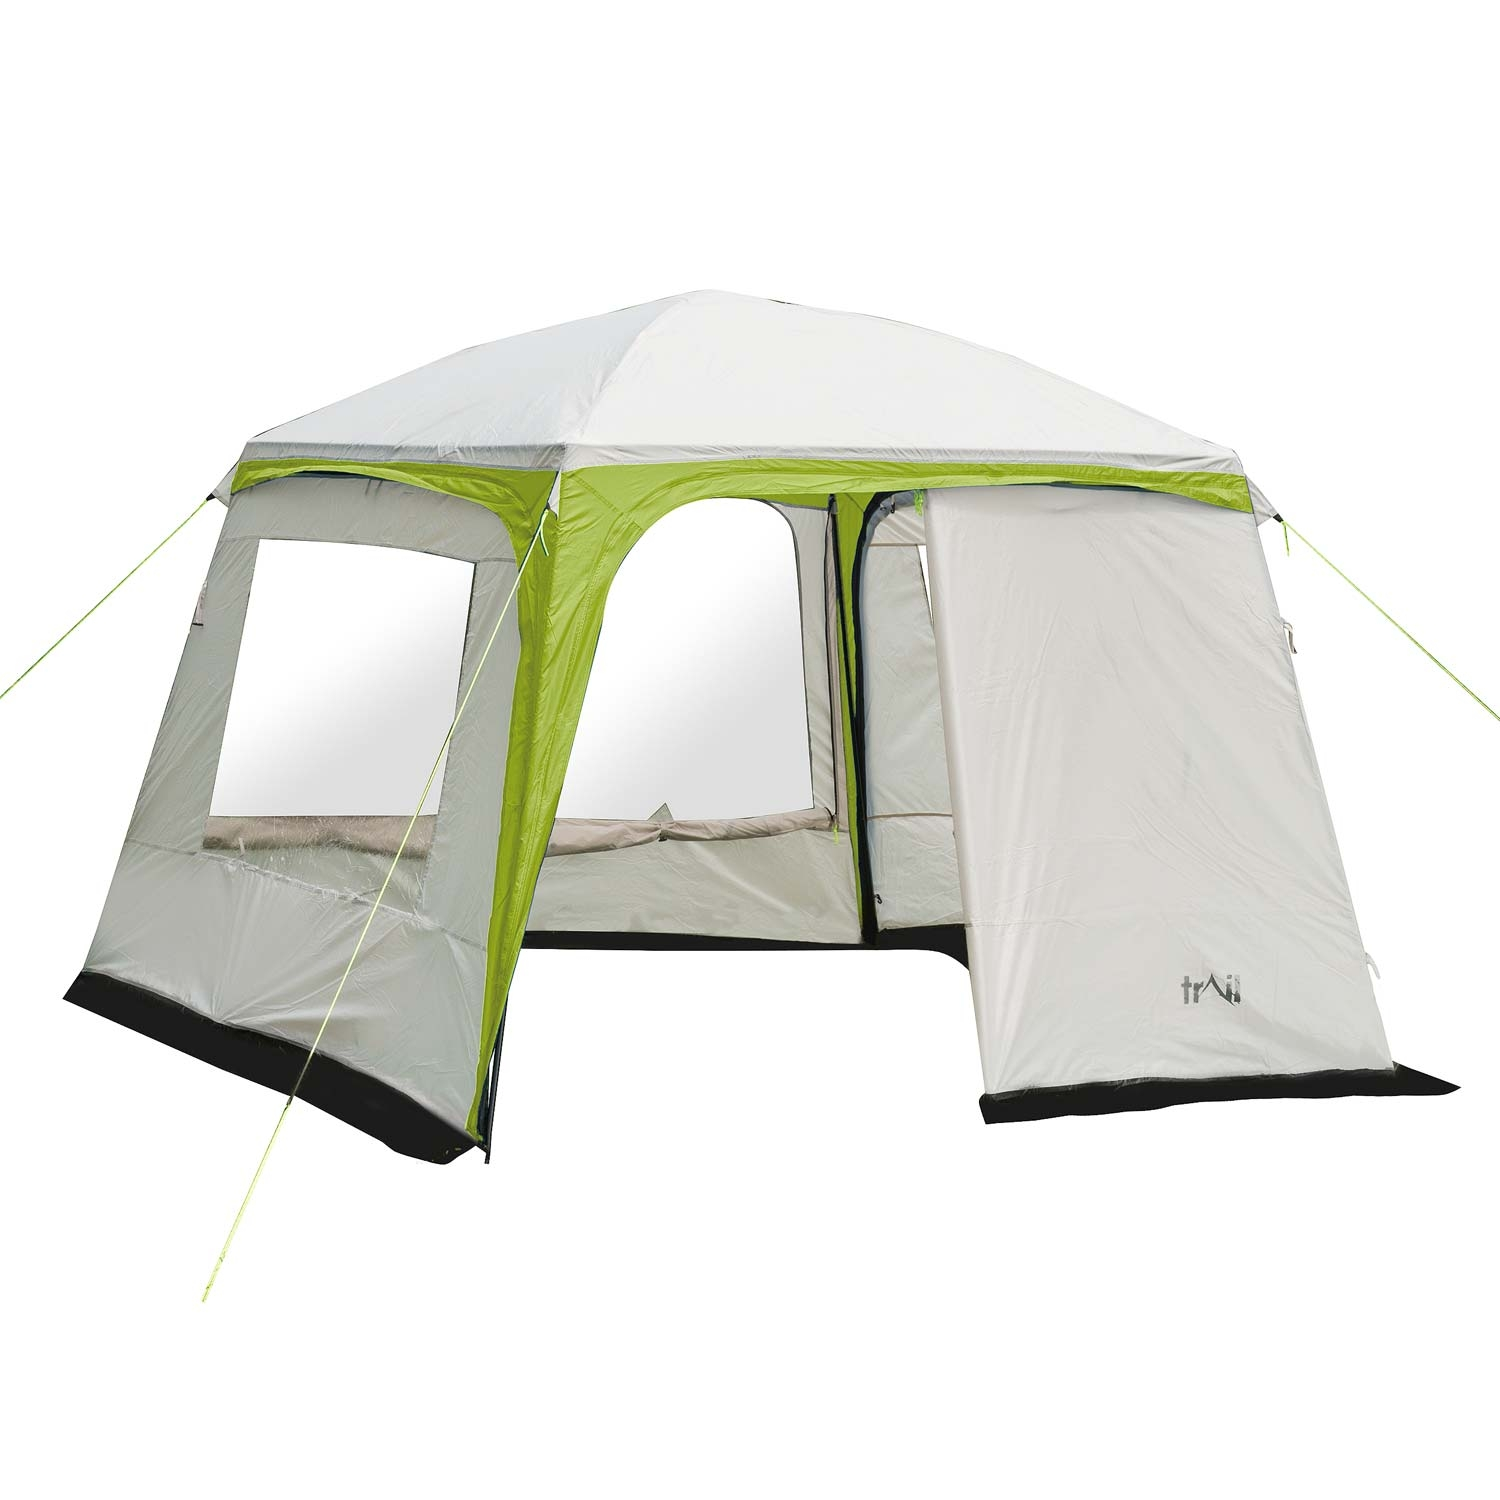 Trail Deluxe Gazebo With Sides 3m X 3m - Green